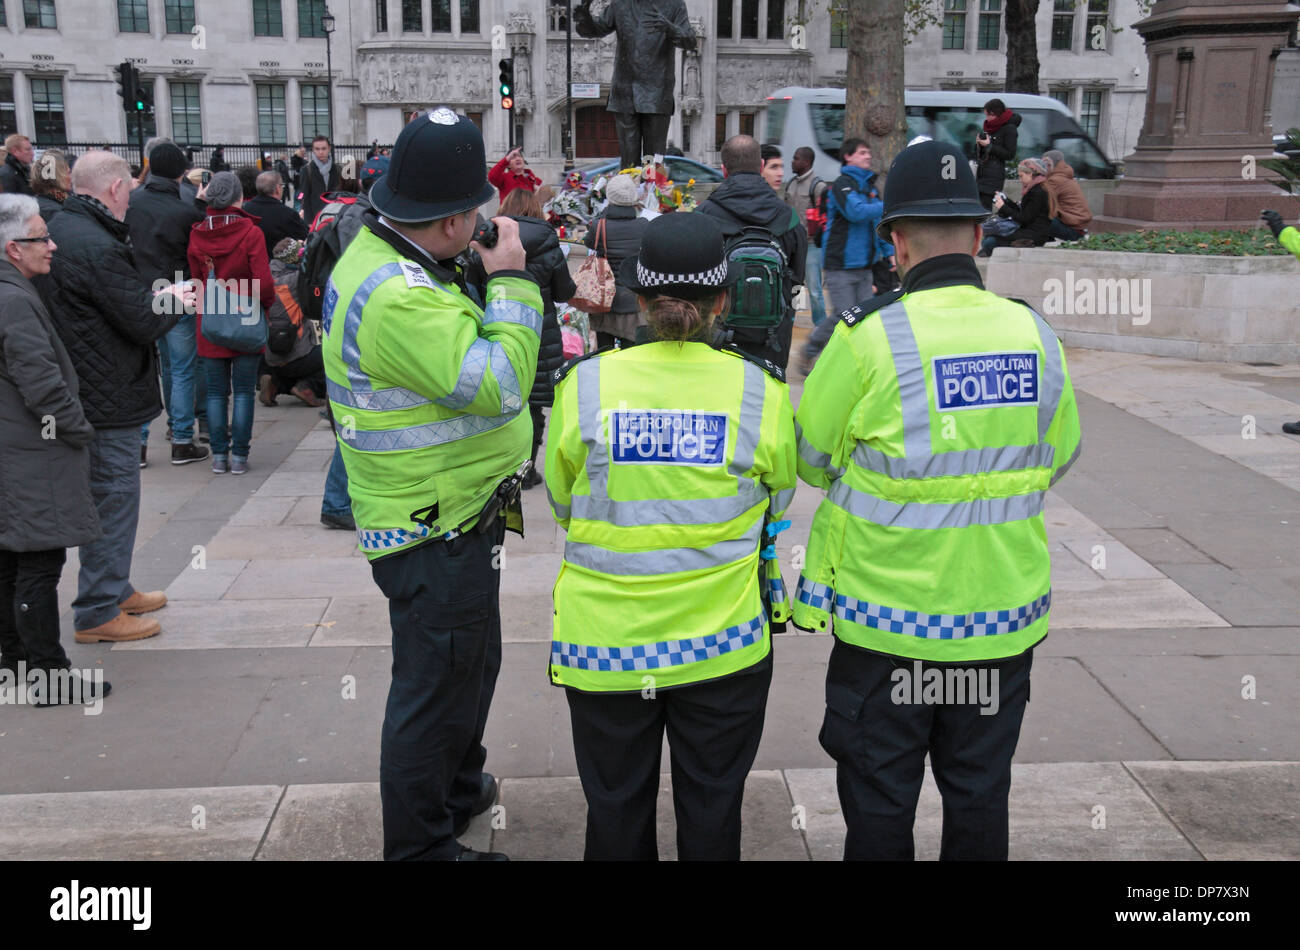 Three Metropolitan Police officers in Parliament Square, London, UK. - Stock Image